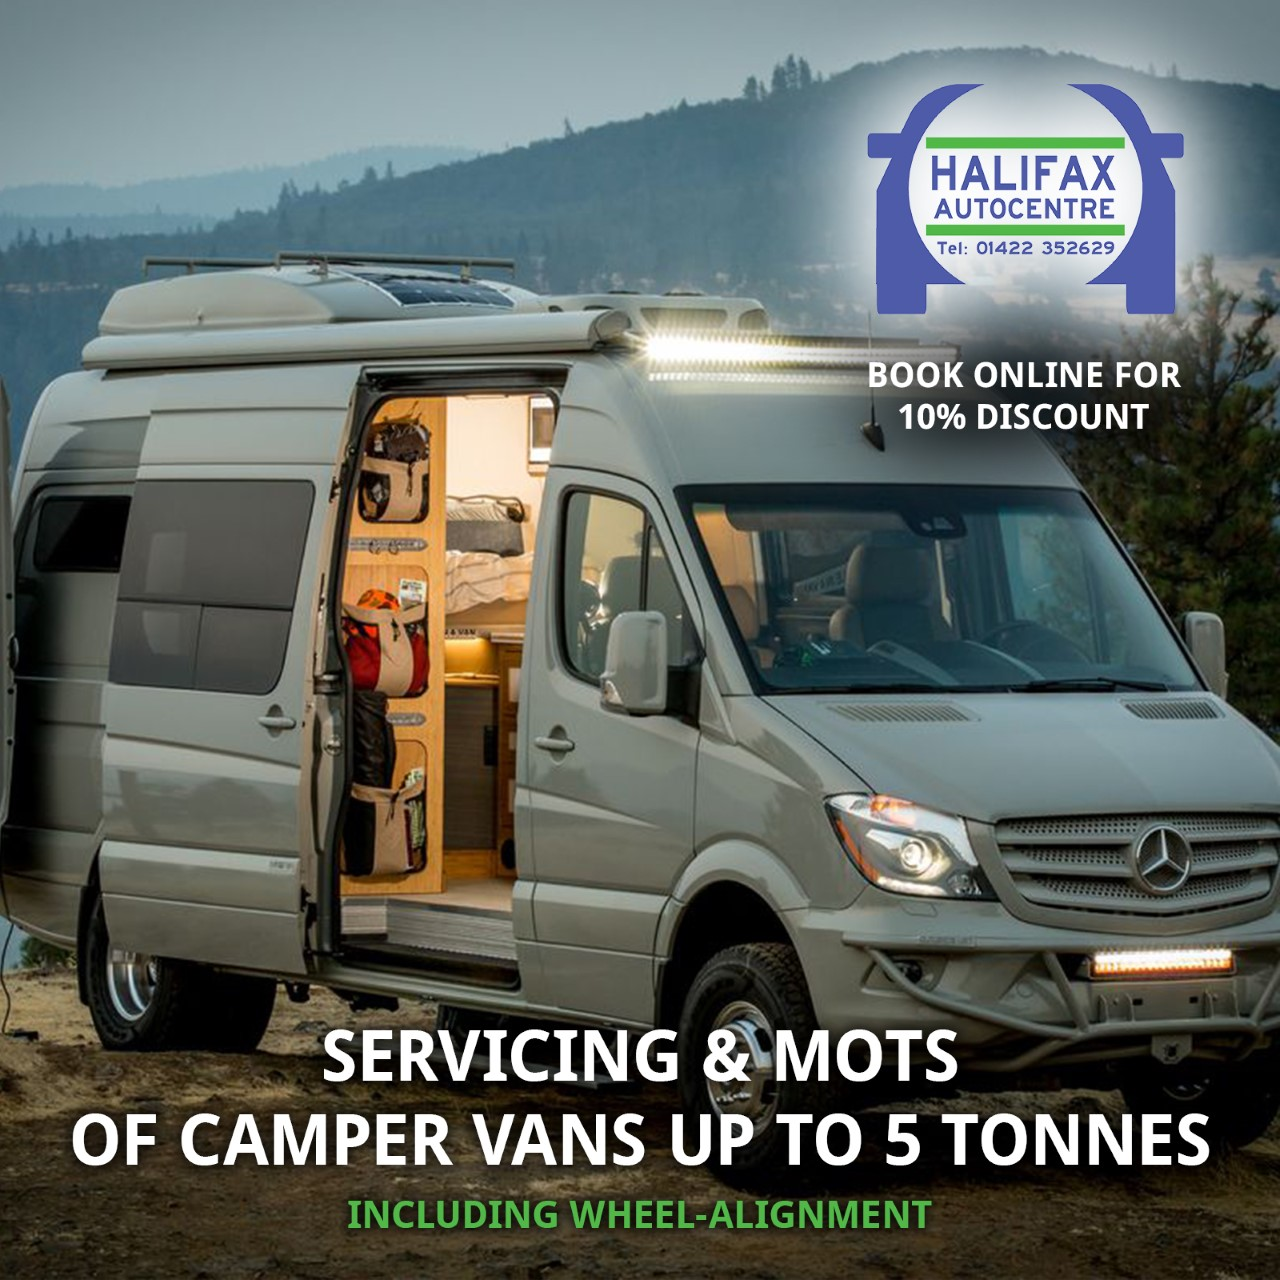 Halifax Autocentre - Campervan Servicing